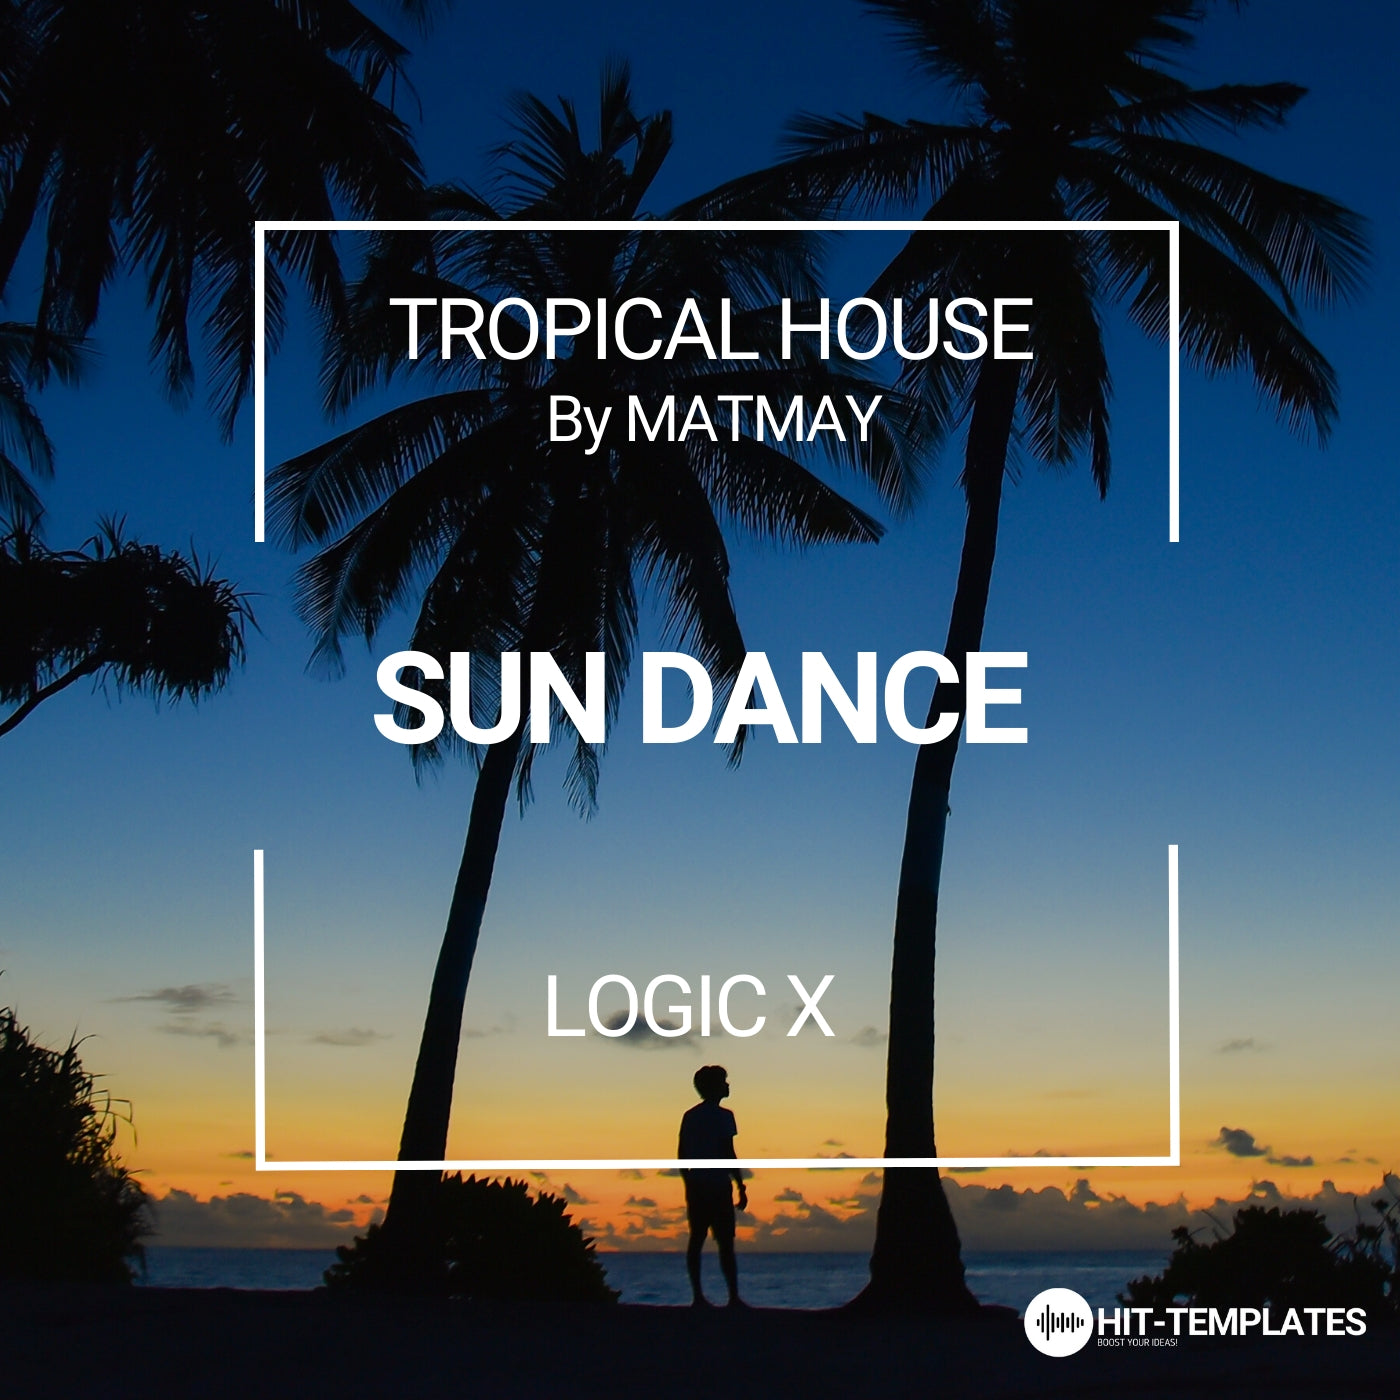 SUNDANCE - TROPICAL HOUSE